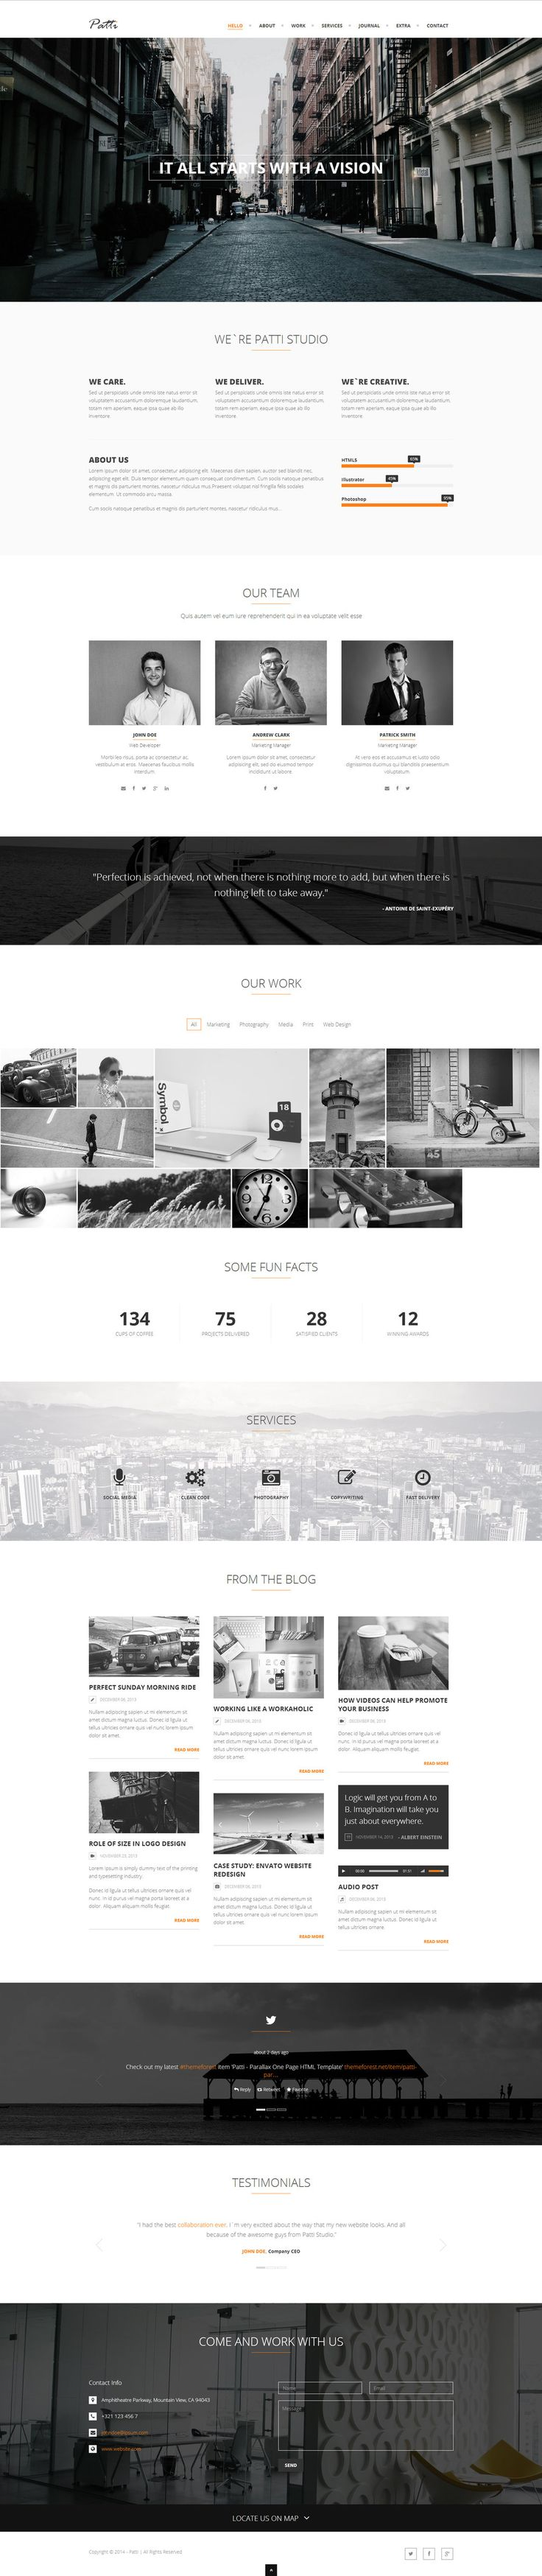 Patti - Parallax One Page HTML Template by DarkStaLkeRR